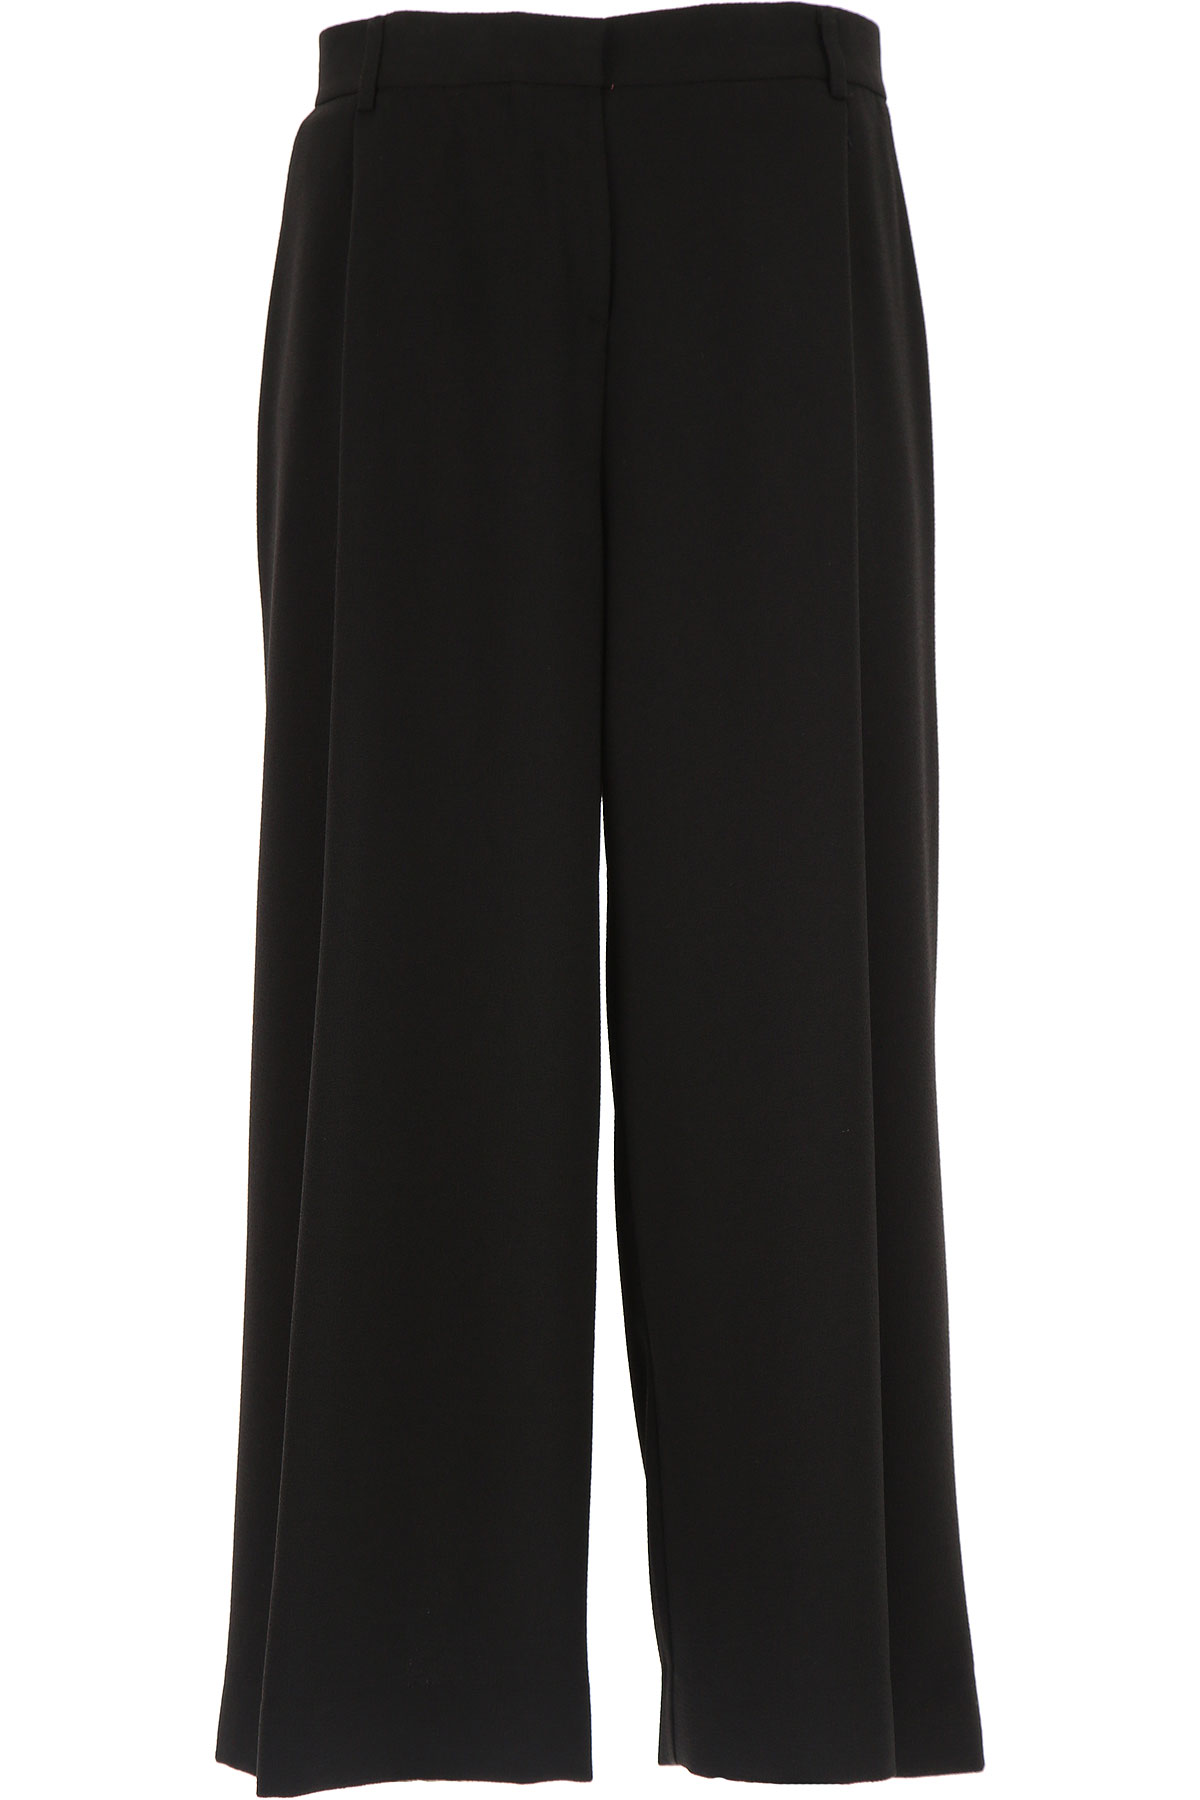 Image of Ottodame Pants for Women On Sale, Black, polyester, 2017, US 4 - I 40 - GB 8 - F36 US 8 - I 44 - GB 12 - F 40